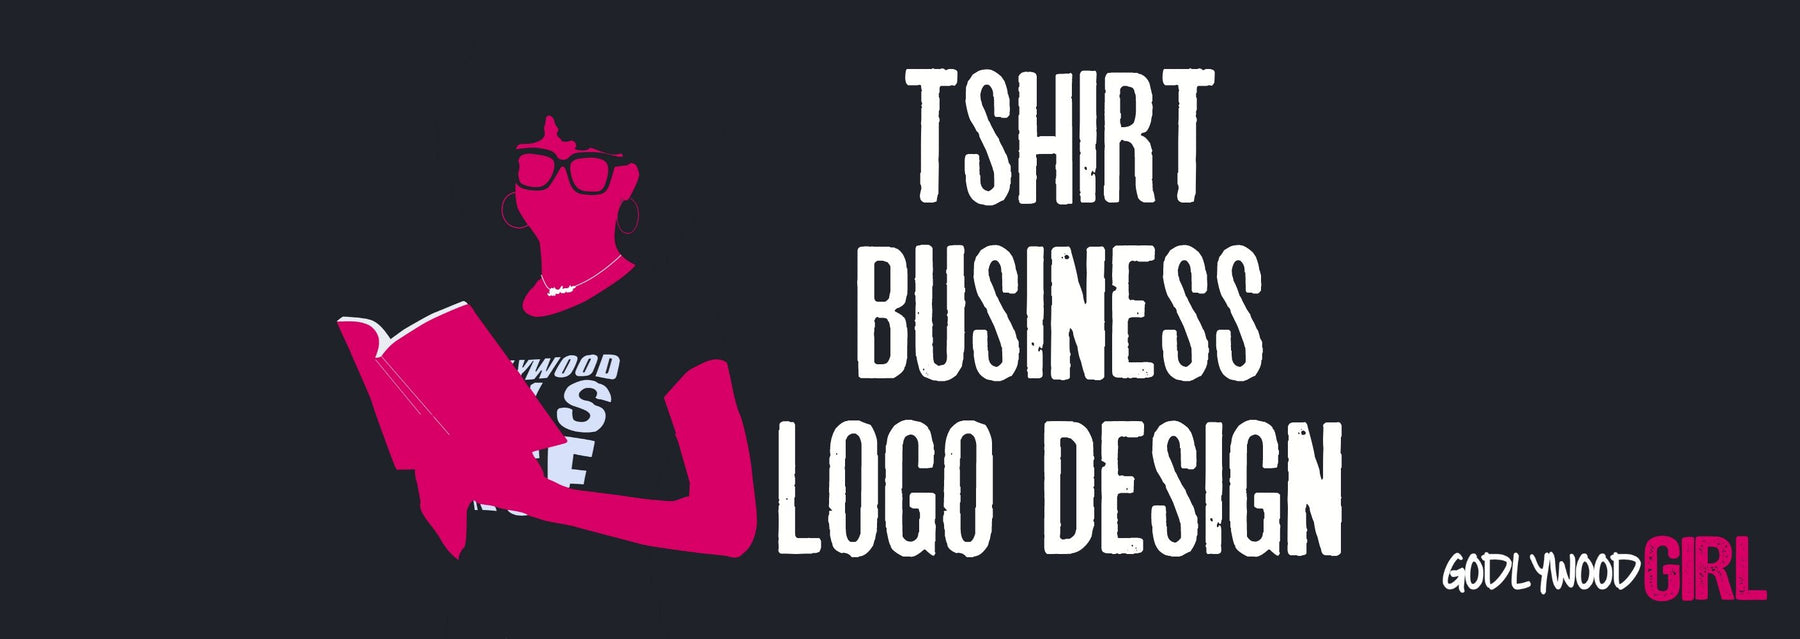 LOGO MAKER (Create A Logo For Your T-Shirt Business Using Logo Maker) | Christian Entrepreneur